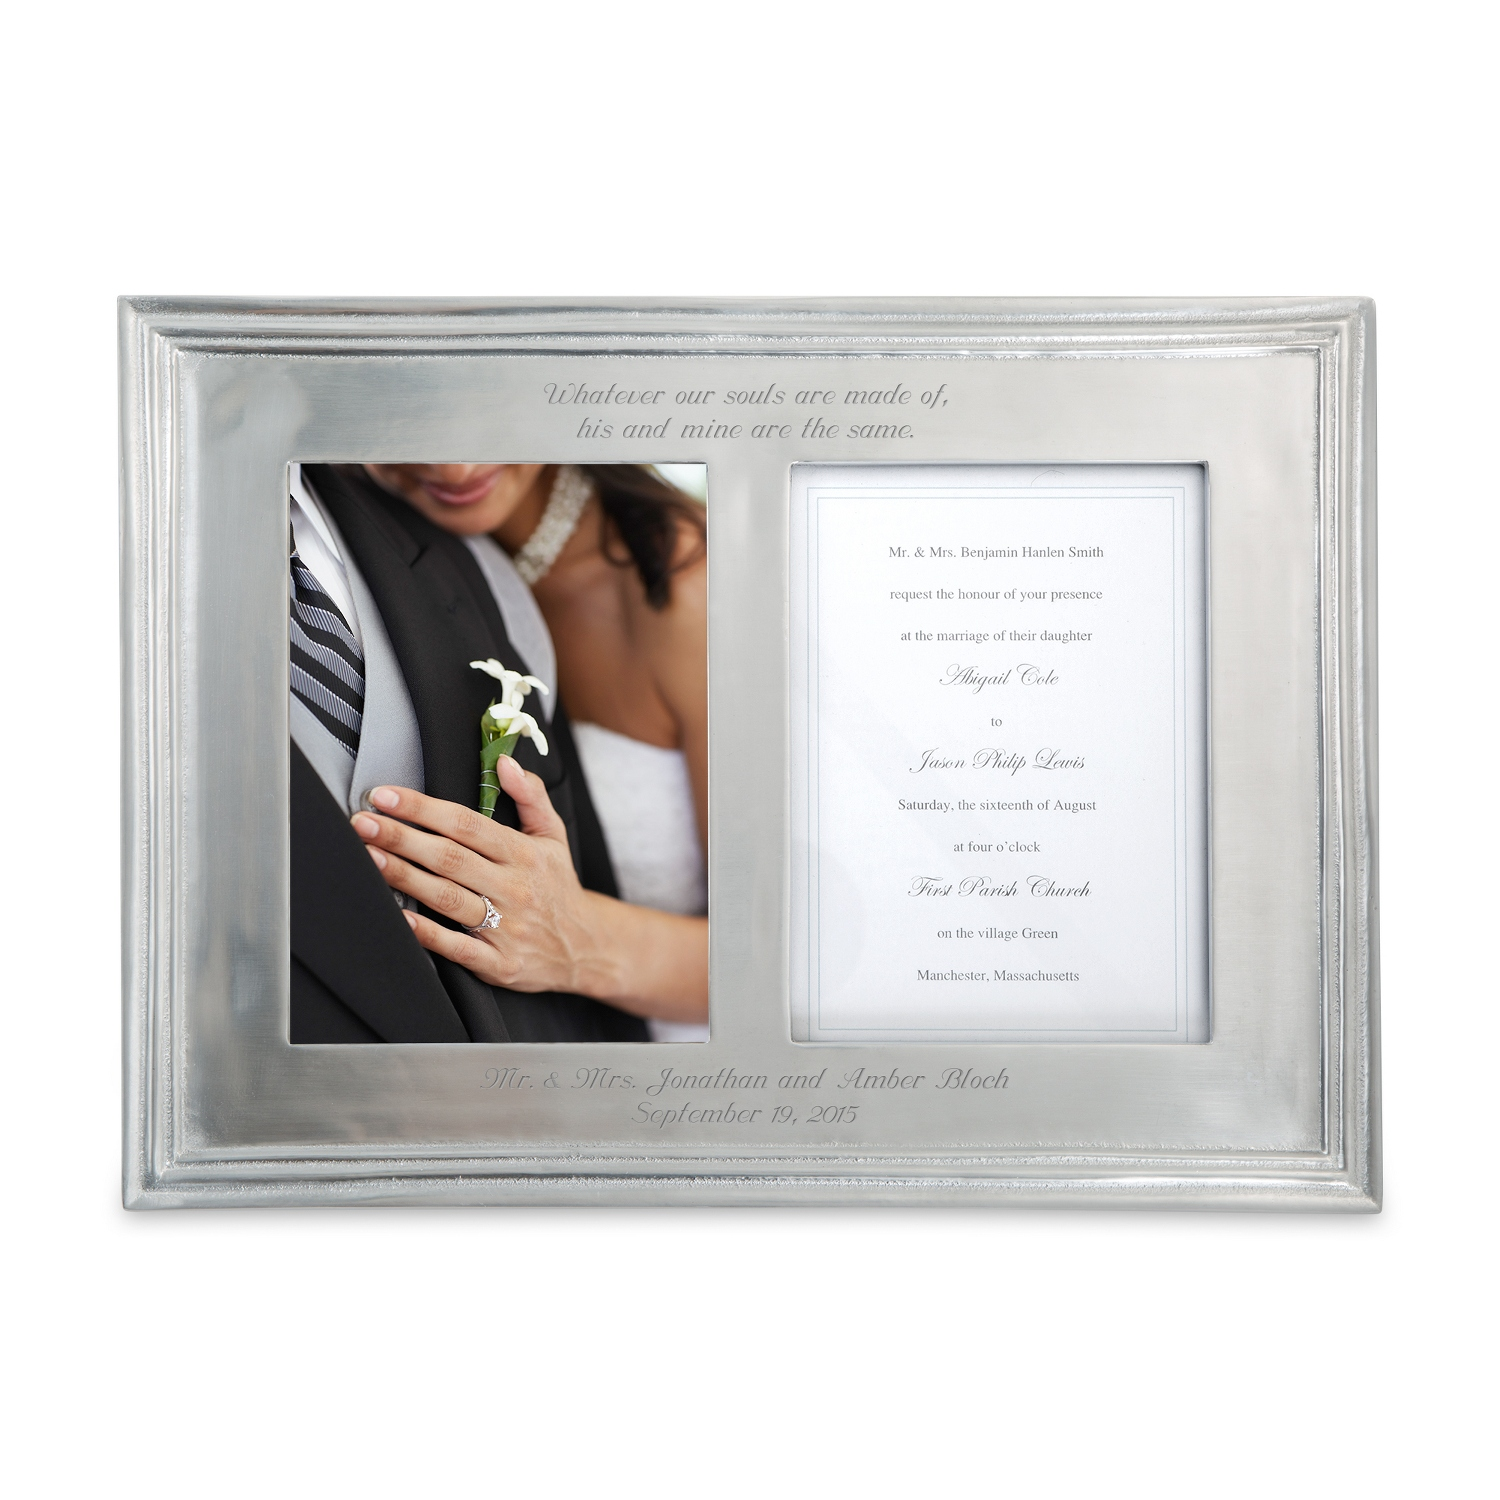 Mariposa Classic Double 5x7 Picture Frame